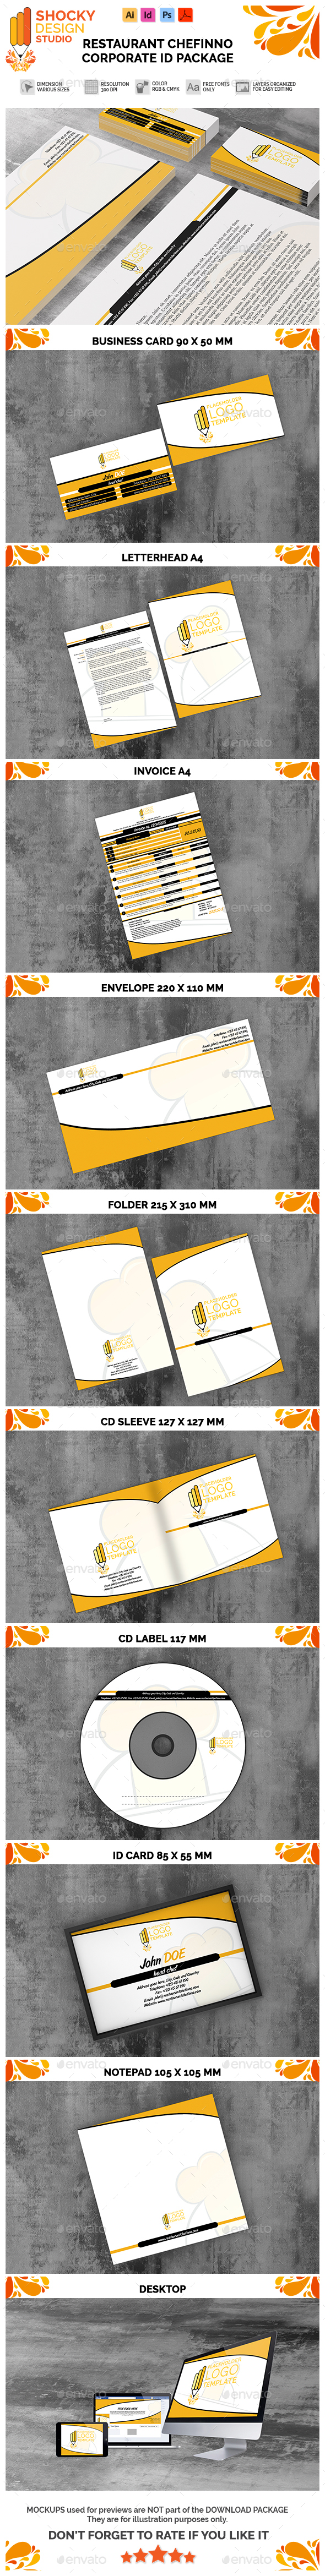 Restaurant Chefinno Corporate ID Package - Stationery Print Templates